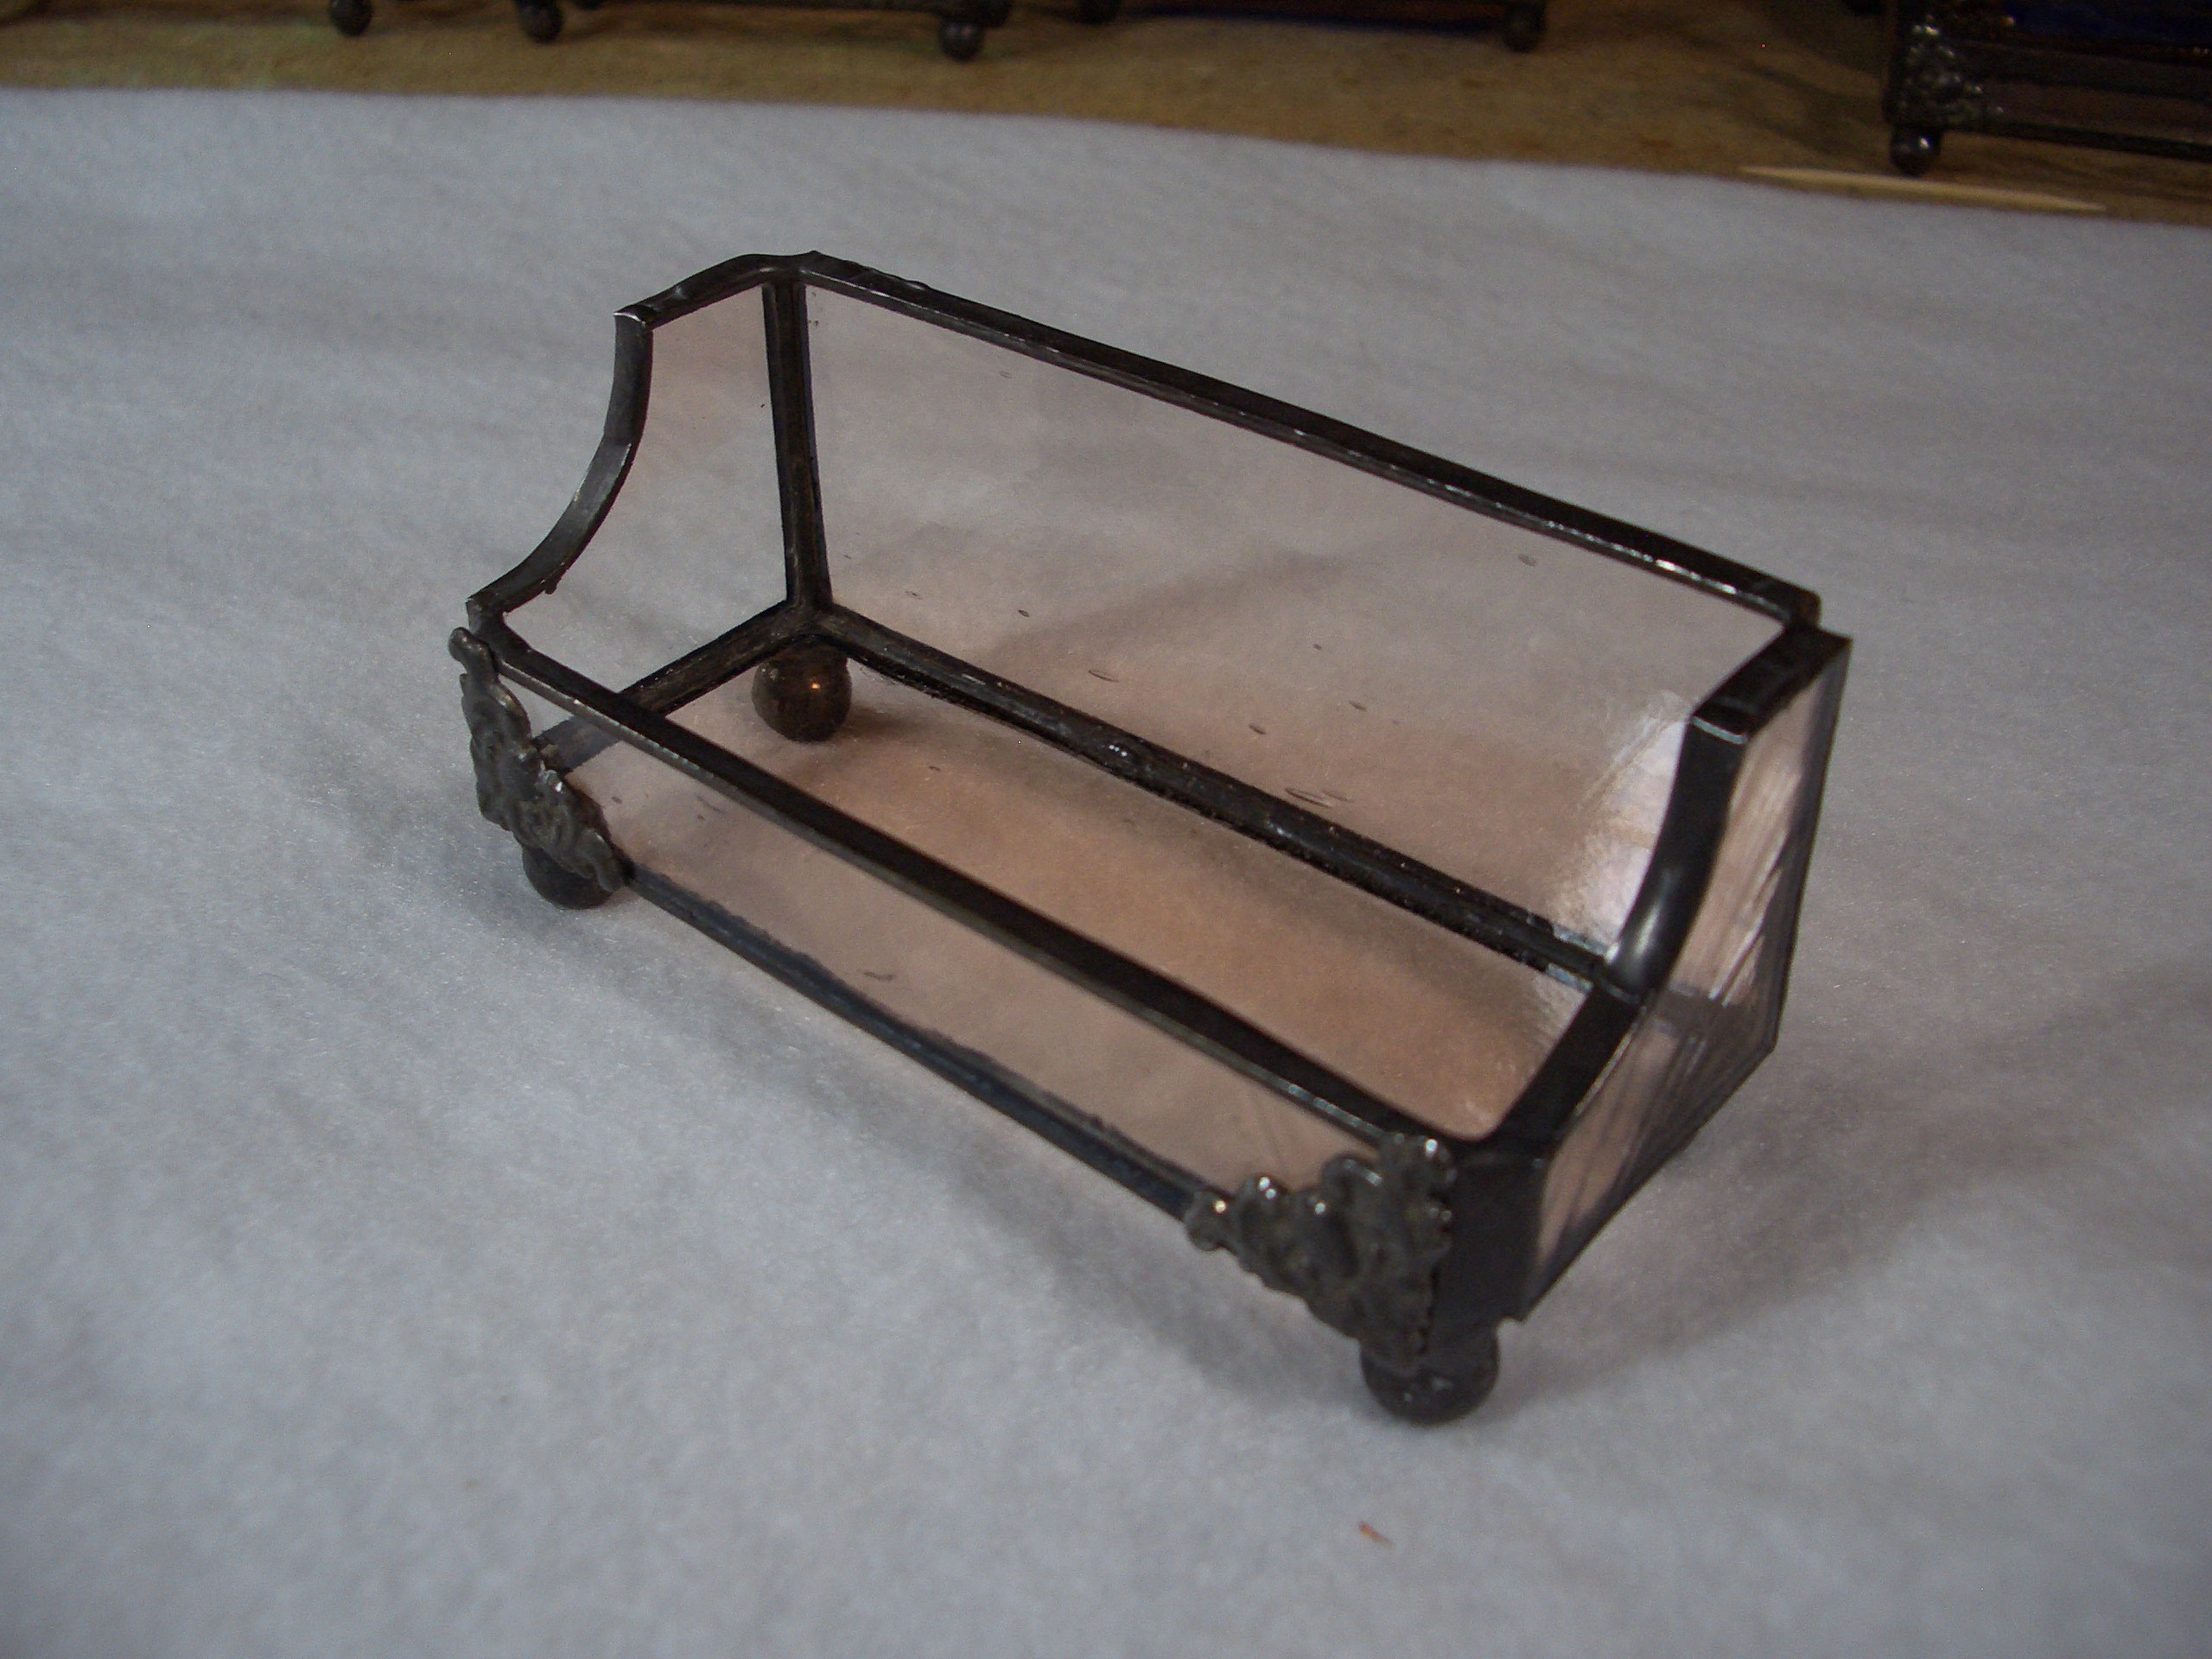 Business Card Holders Picture Gallery - Acadian Glass Art Studio LLC